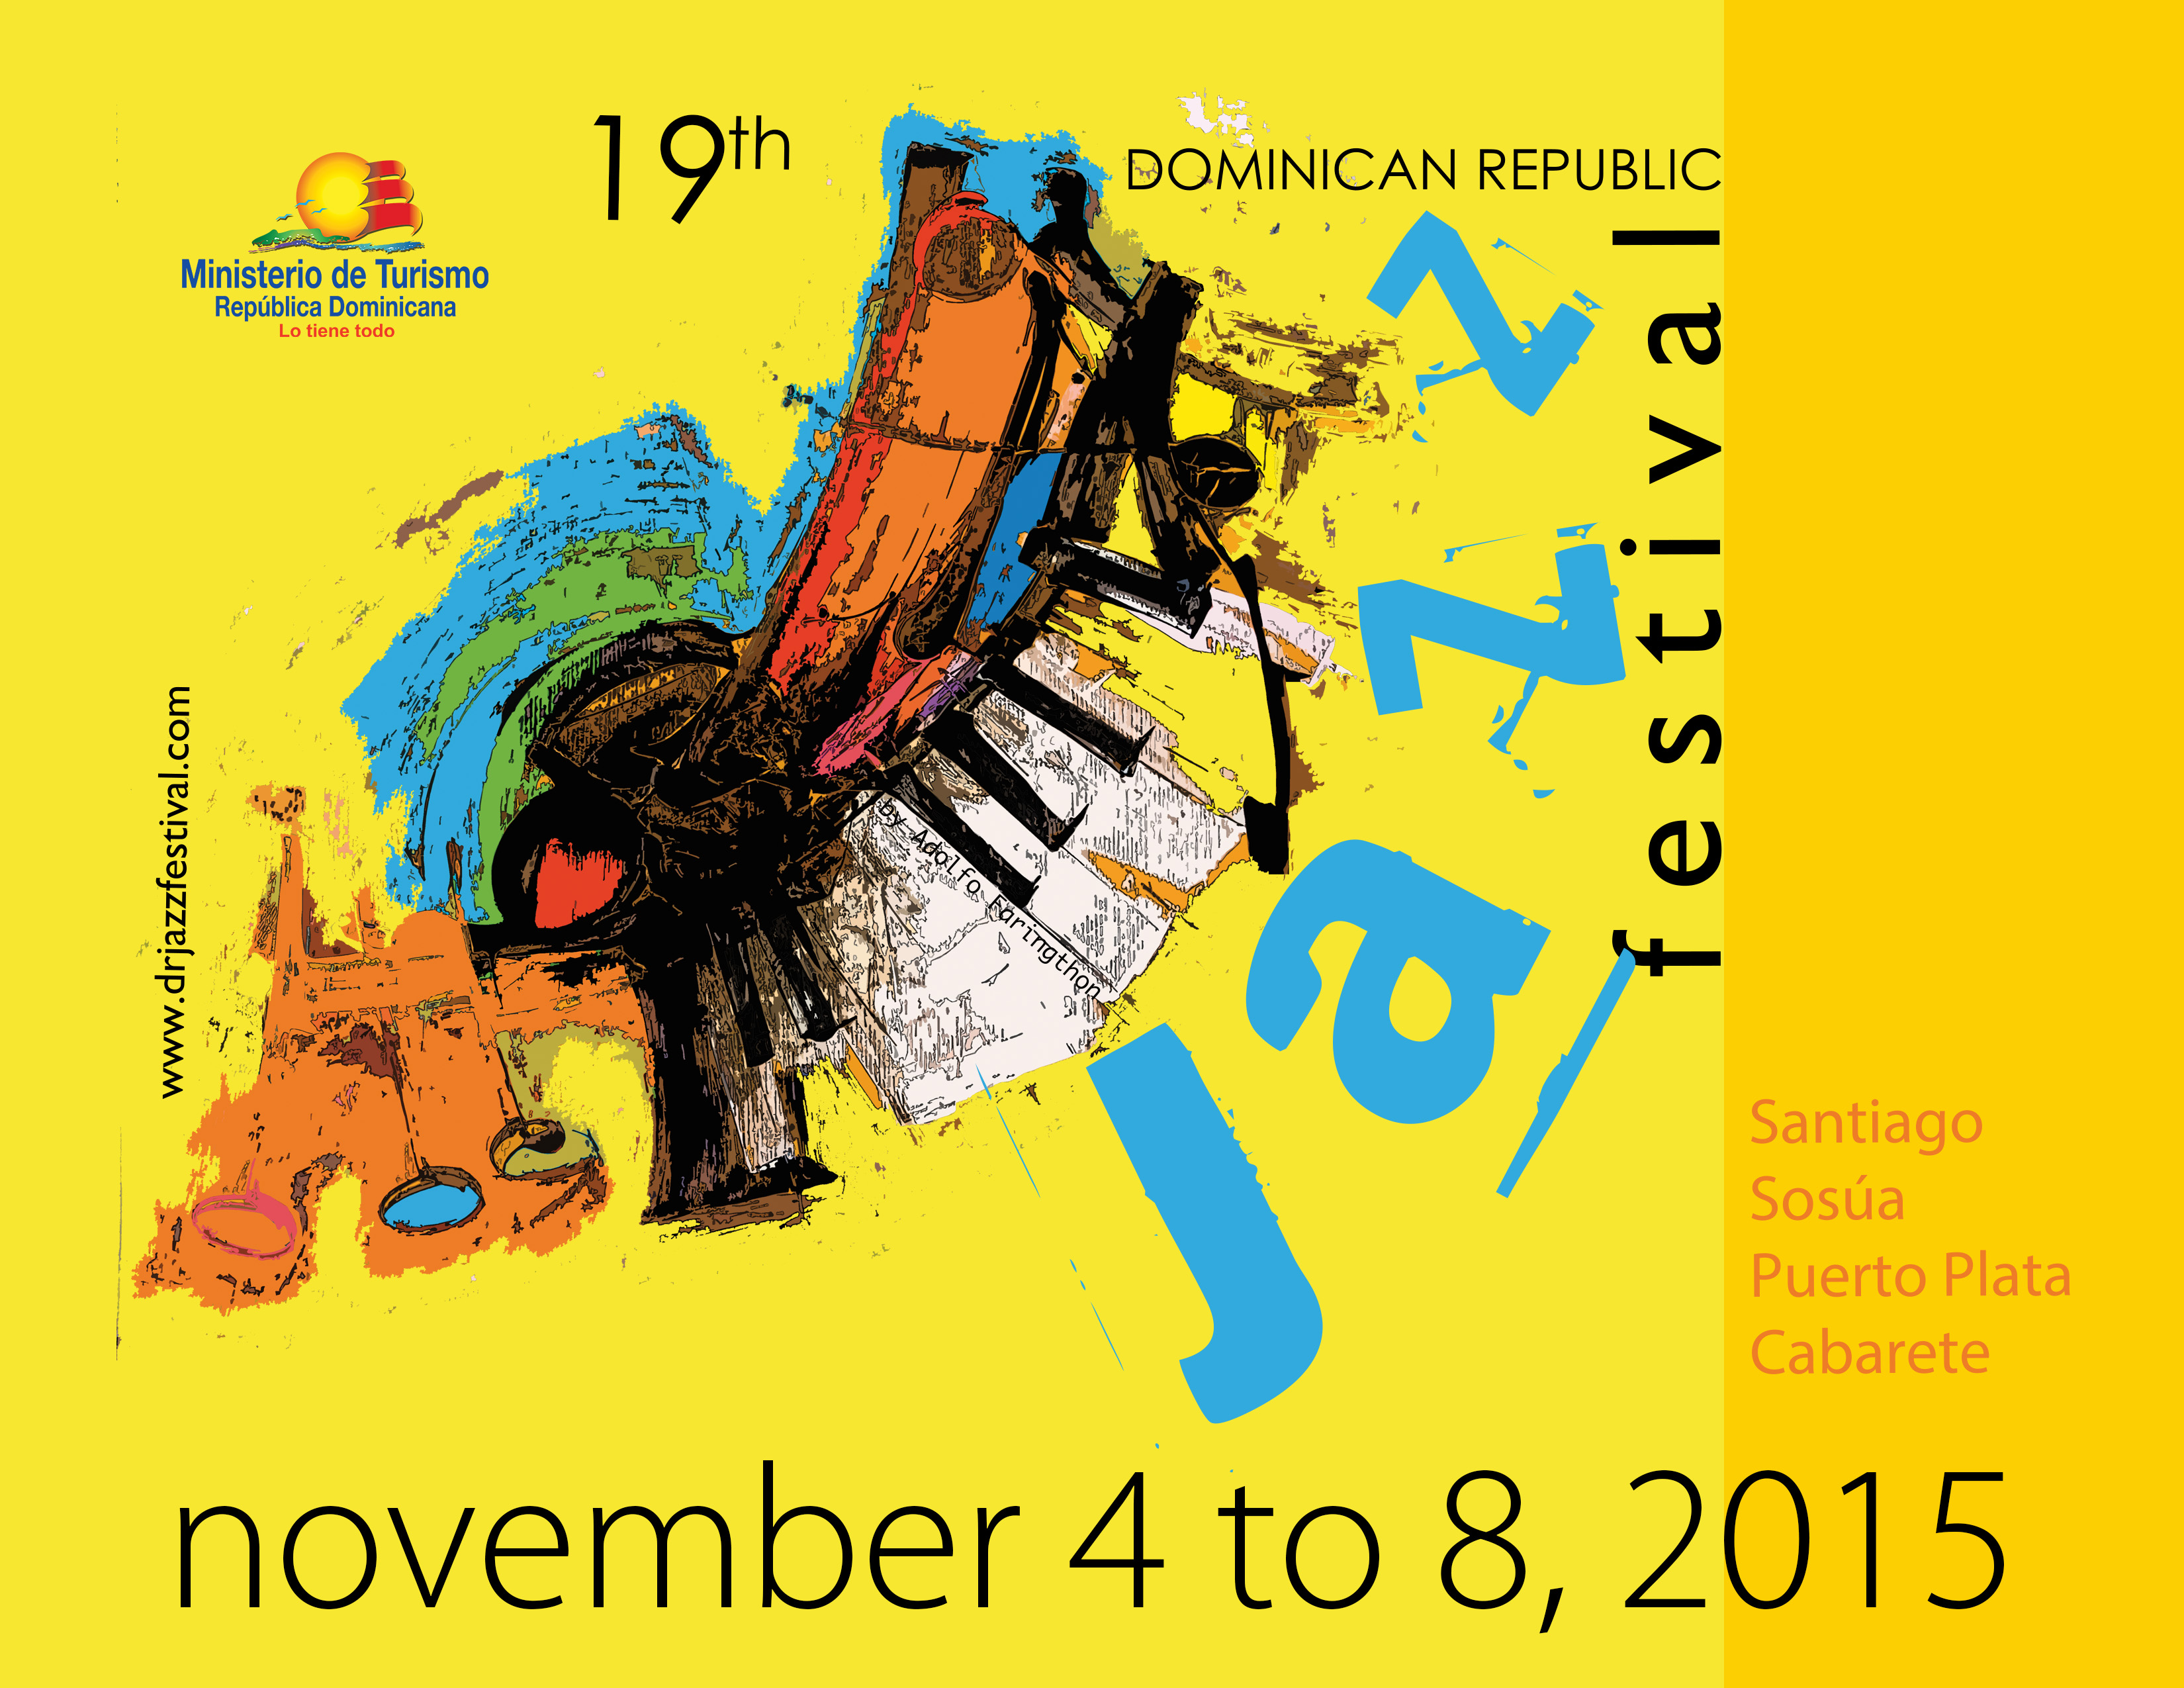 dominican republic jazz festival vip tickets available